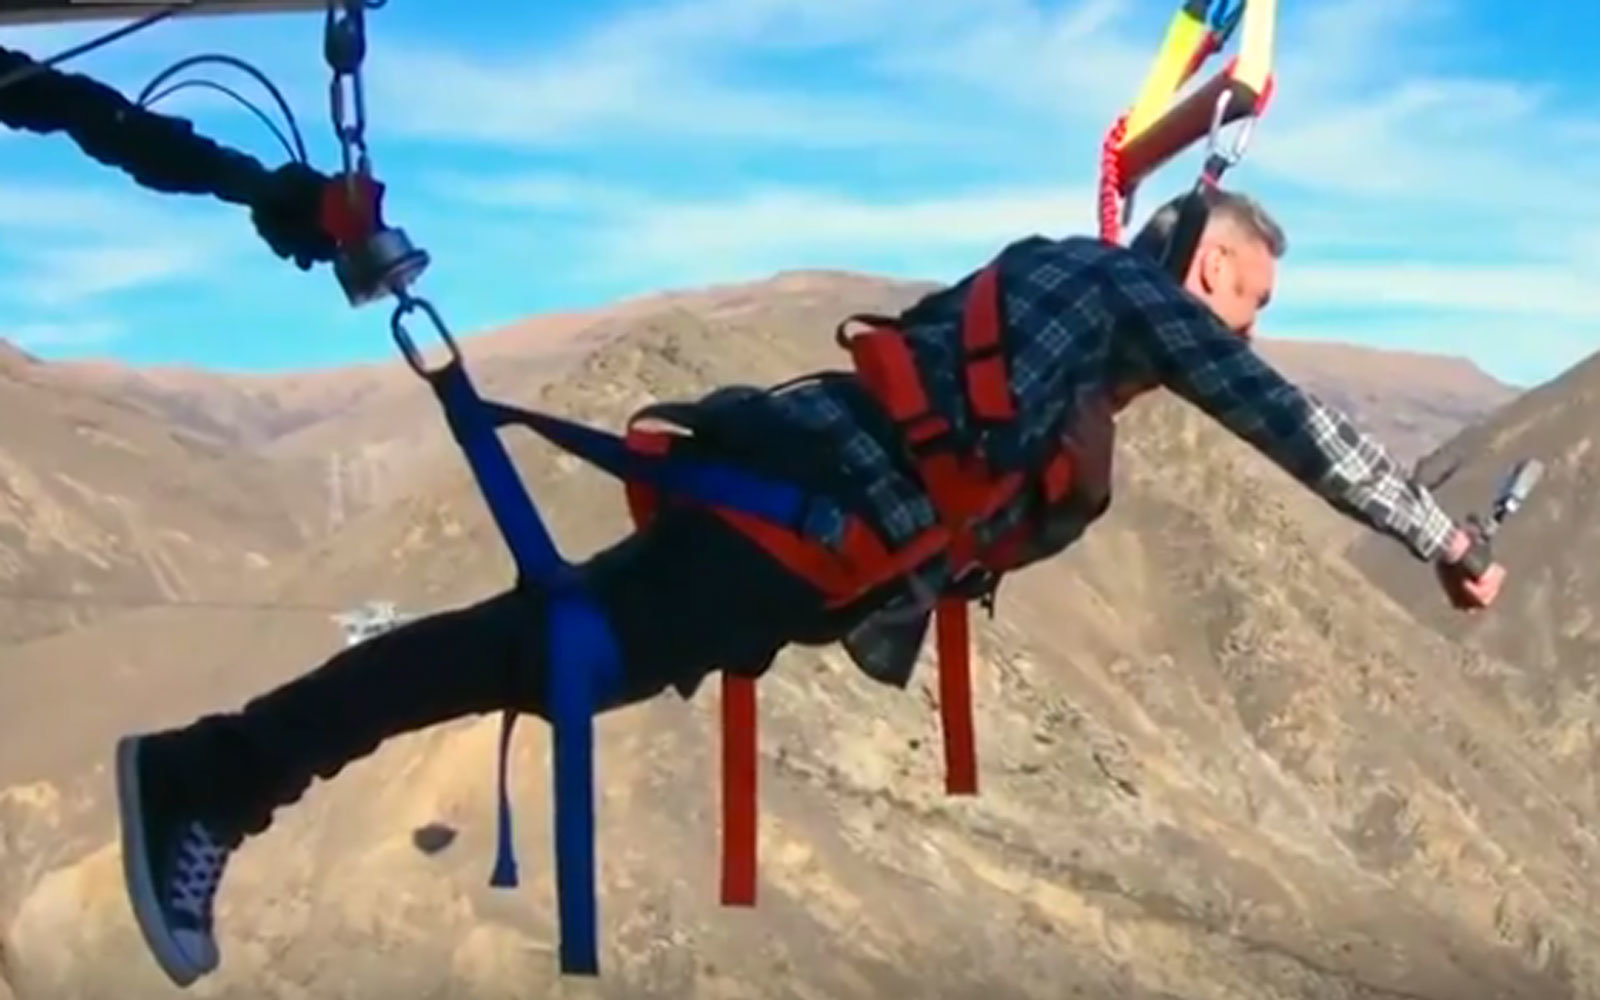 New Zealand's New Human Slingshot Will Fling You Across a Breathtaking Valley at 60 MPH (Video)